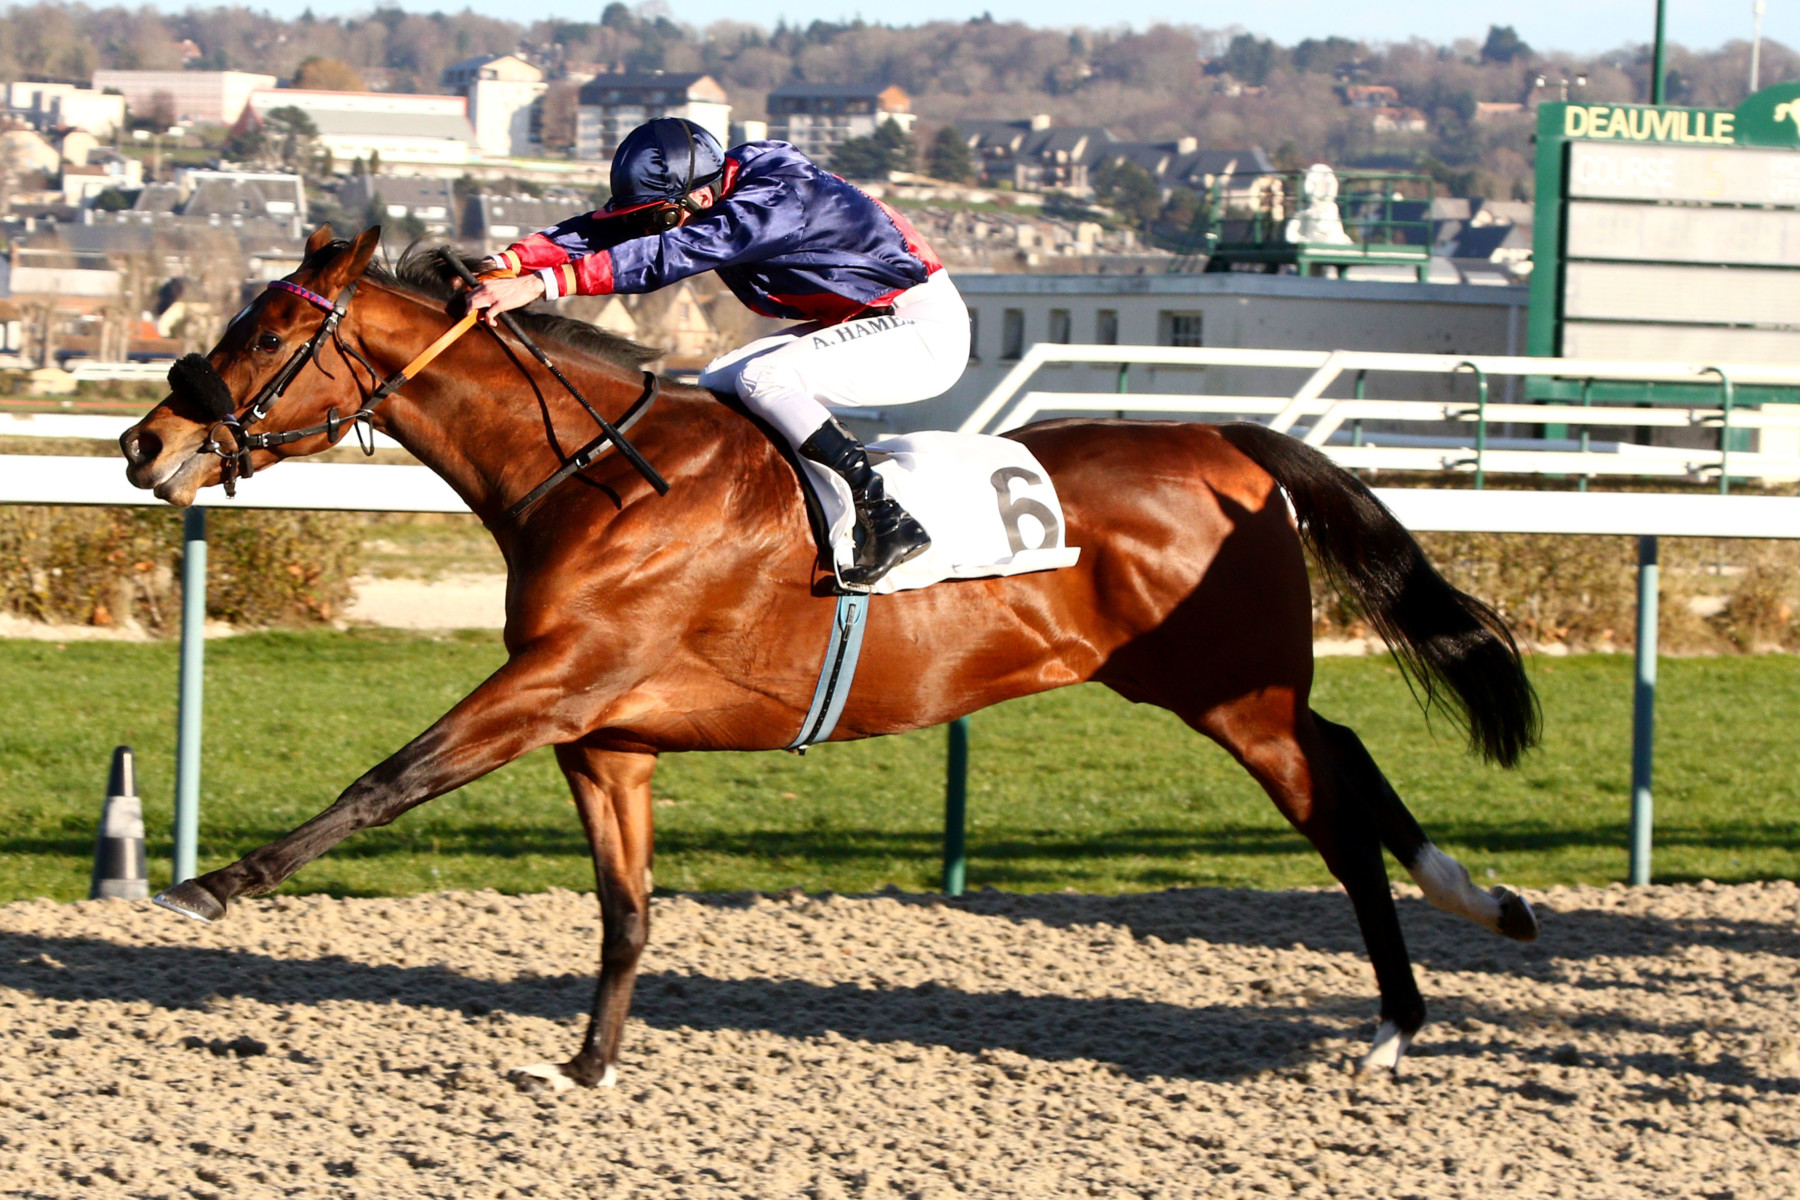 PRIX DU CASTEL (CLASSE 1) - Kick and Rush peut confirmer